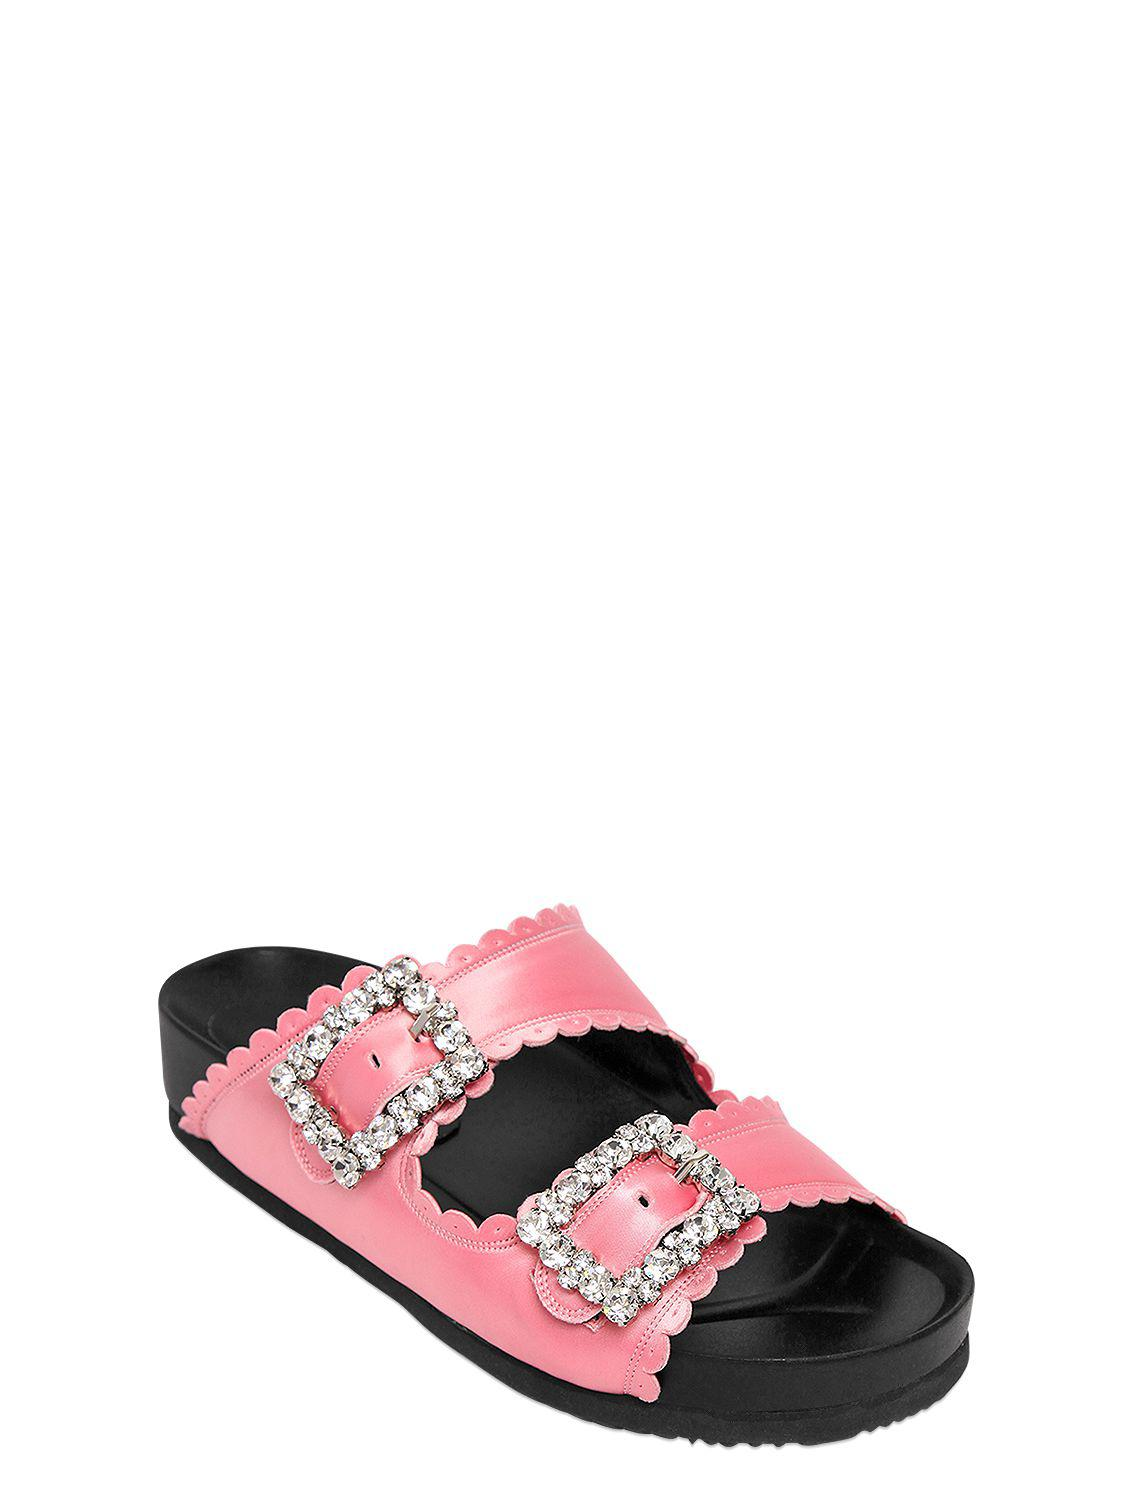 Looking For Sale Online Discount Huge Surprise SUECOMMA BONNIE 20MM EMBELLISHED SATIN SLIDE FLATS 5KgzI8J